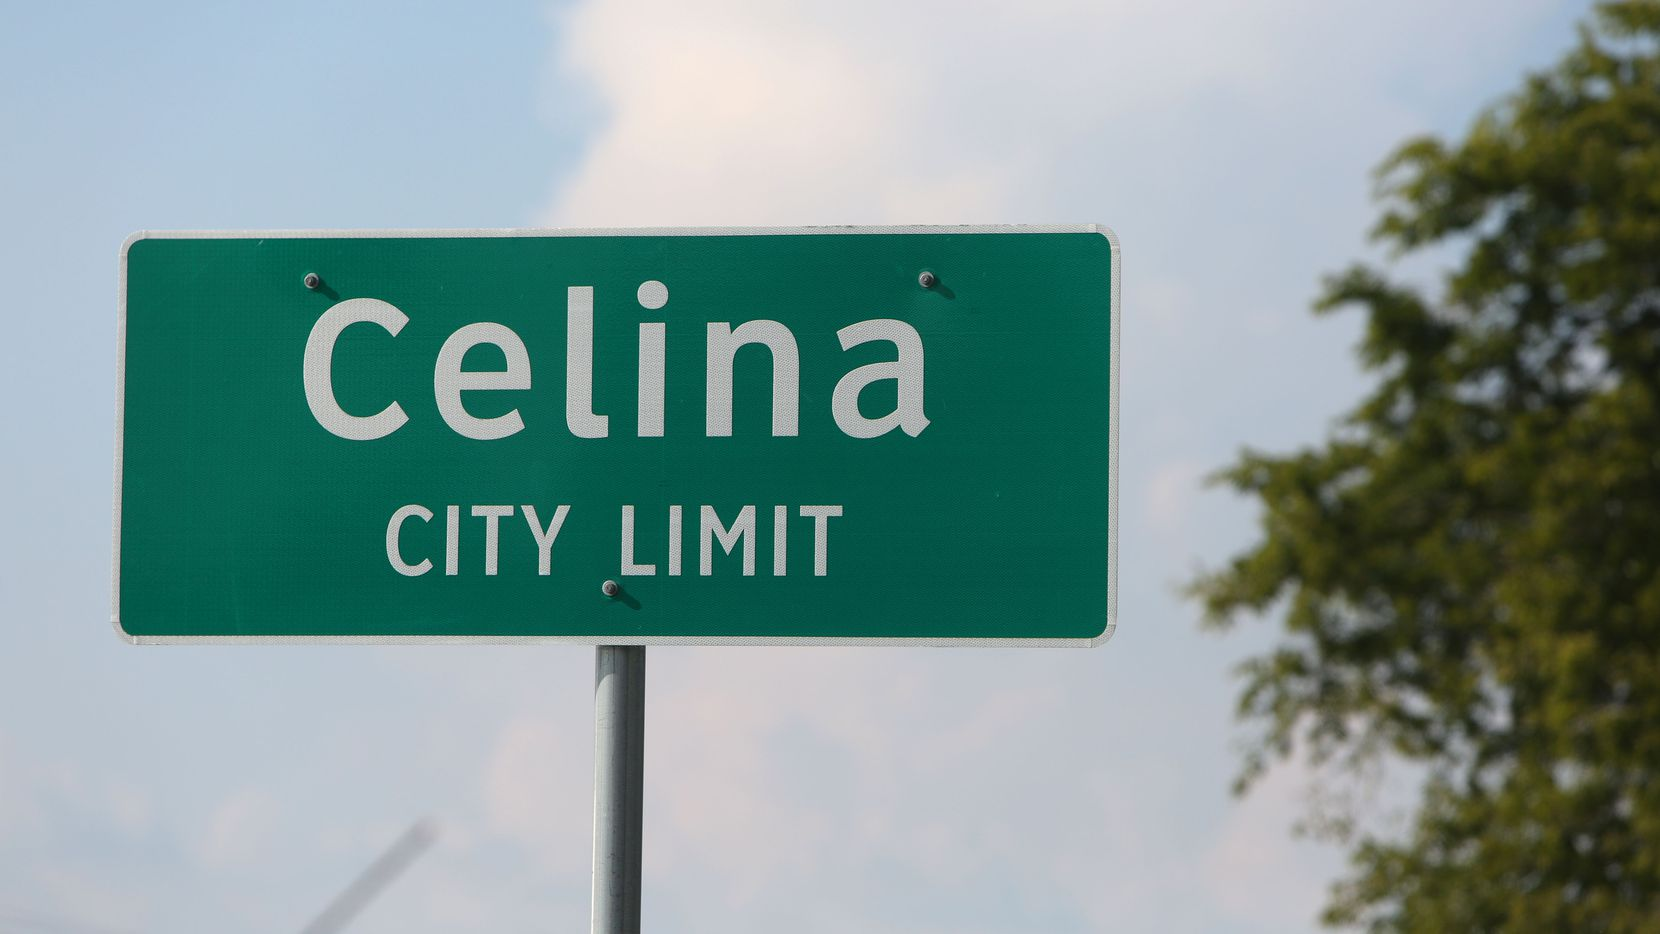 The property sold is one of the prime development sites in Celina.